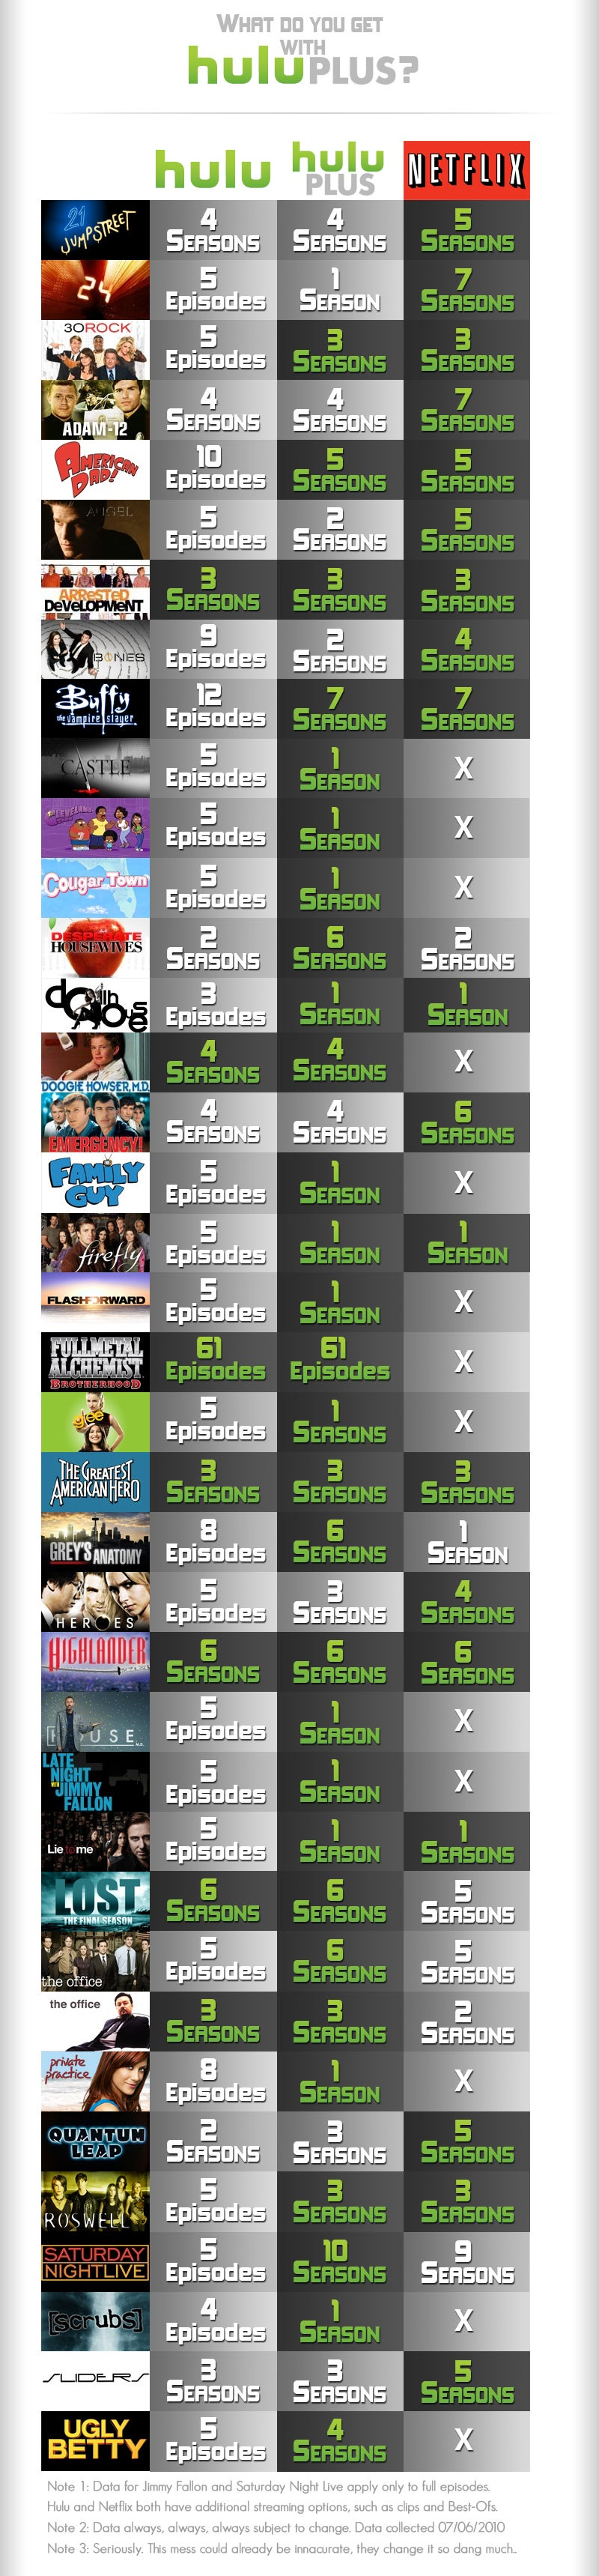 Hulu Plus Comparison Chart Pits Hulu, Hulu Plus, and Netflix Libraries Against Each Other